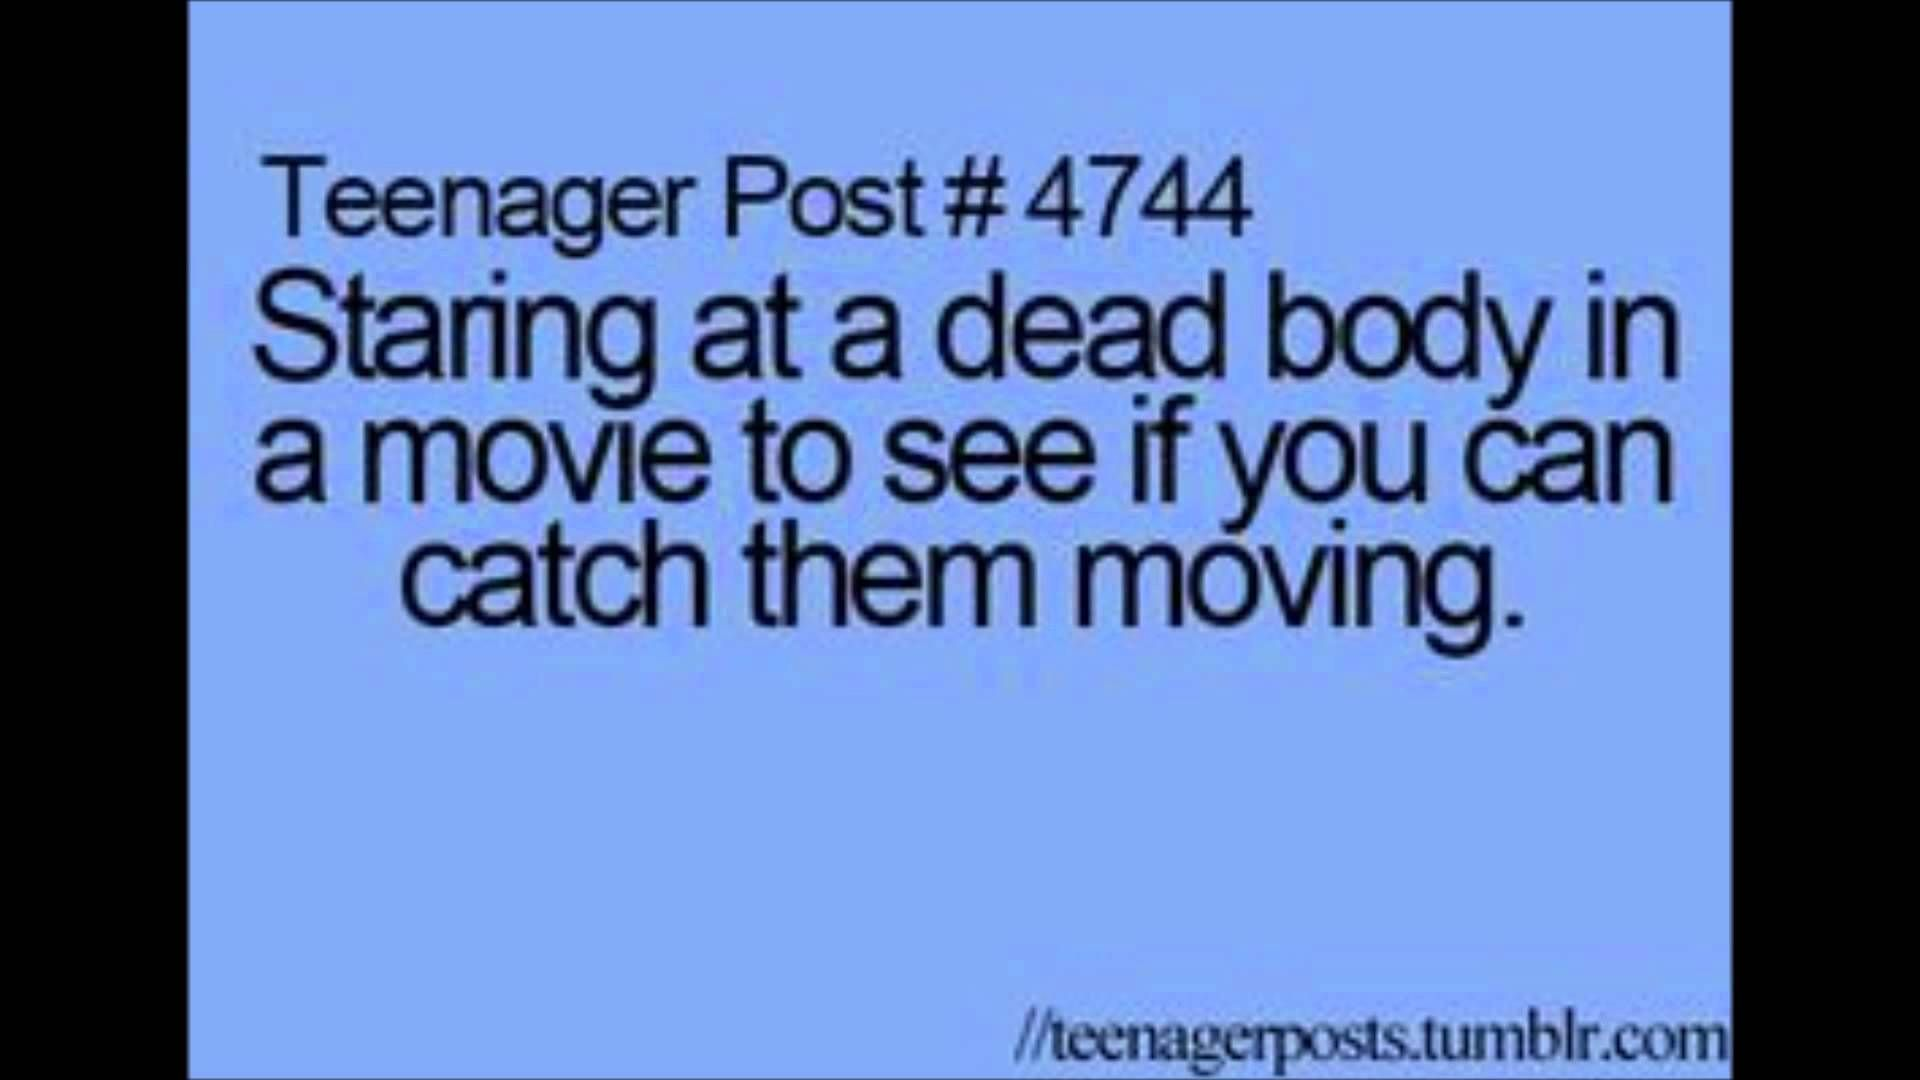 So True And Funny Teenager Posts 1 Funny Quotes For Teens Awkward Moment Quotes Teenager Posts Funny